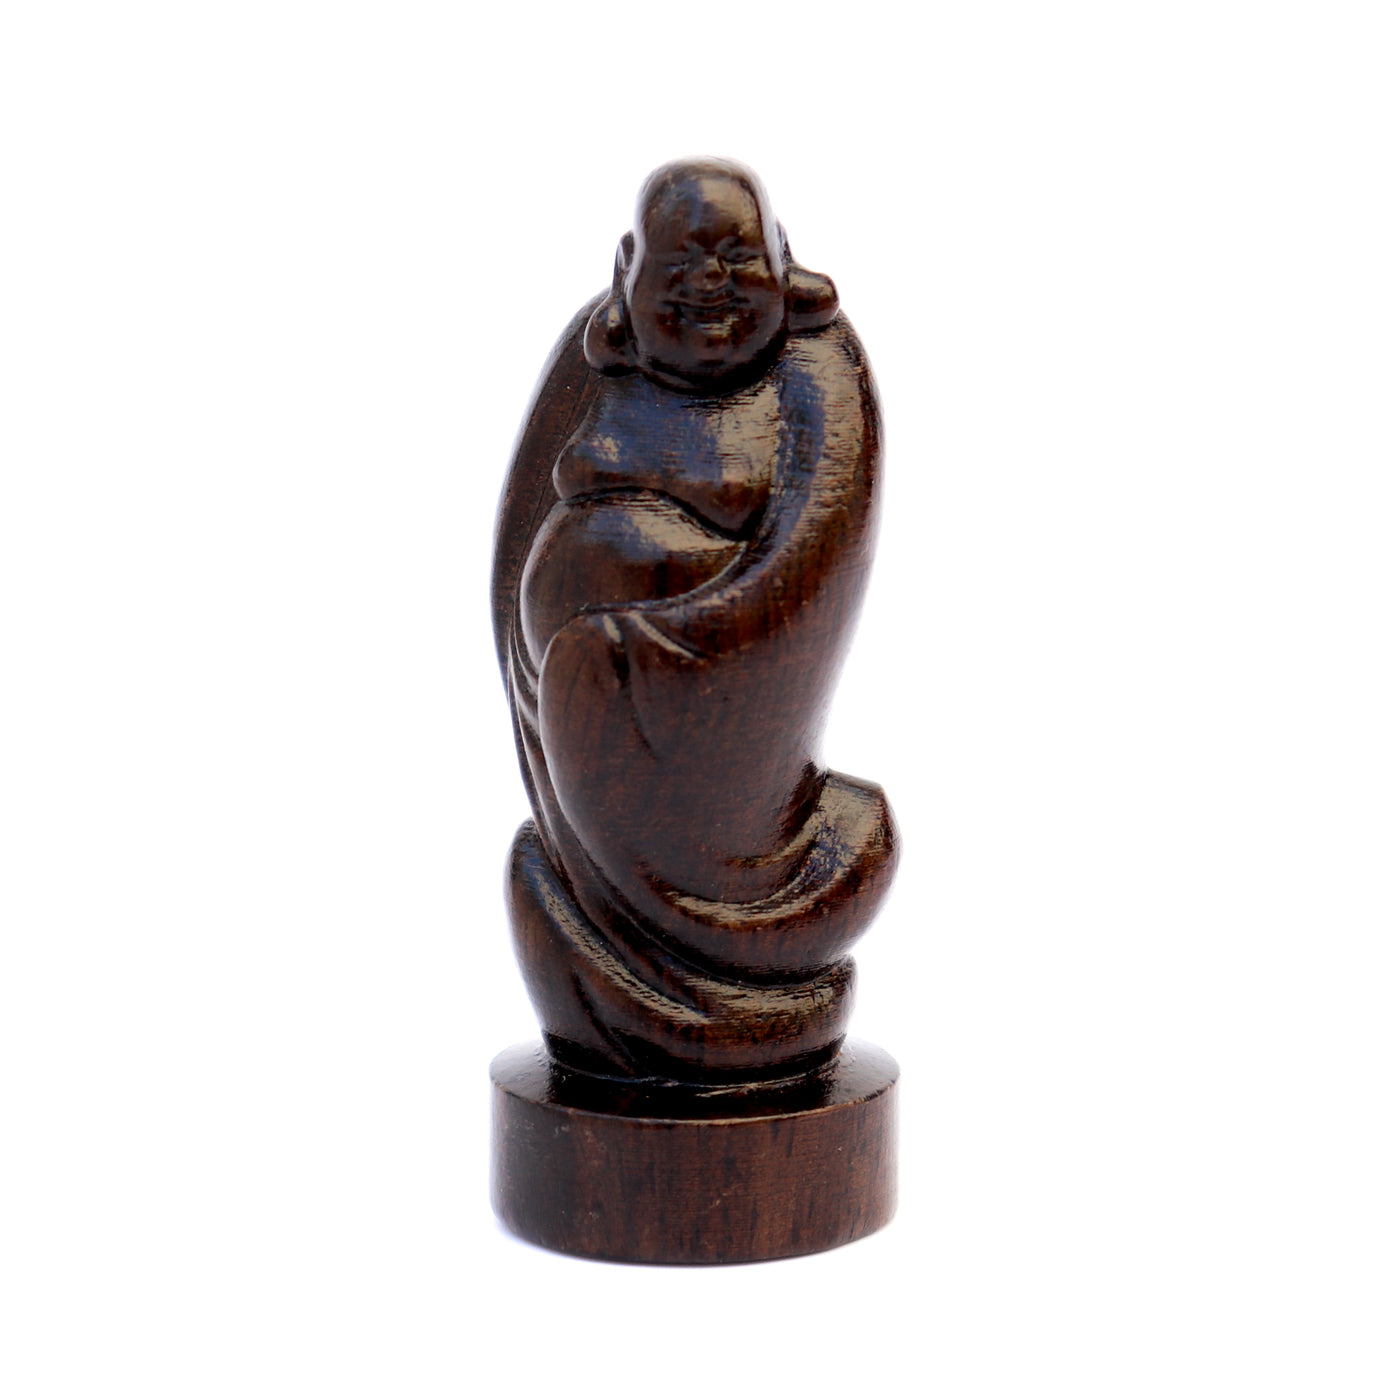 Wooden Buddha Statue - Hand-carved - Meditation Statues